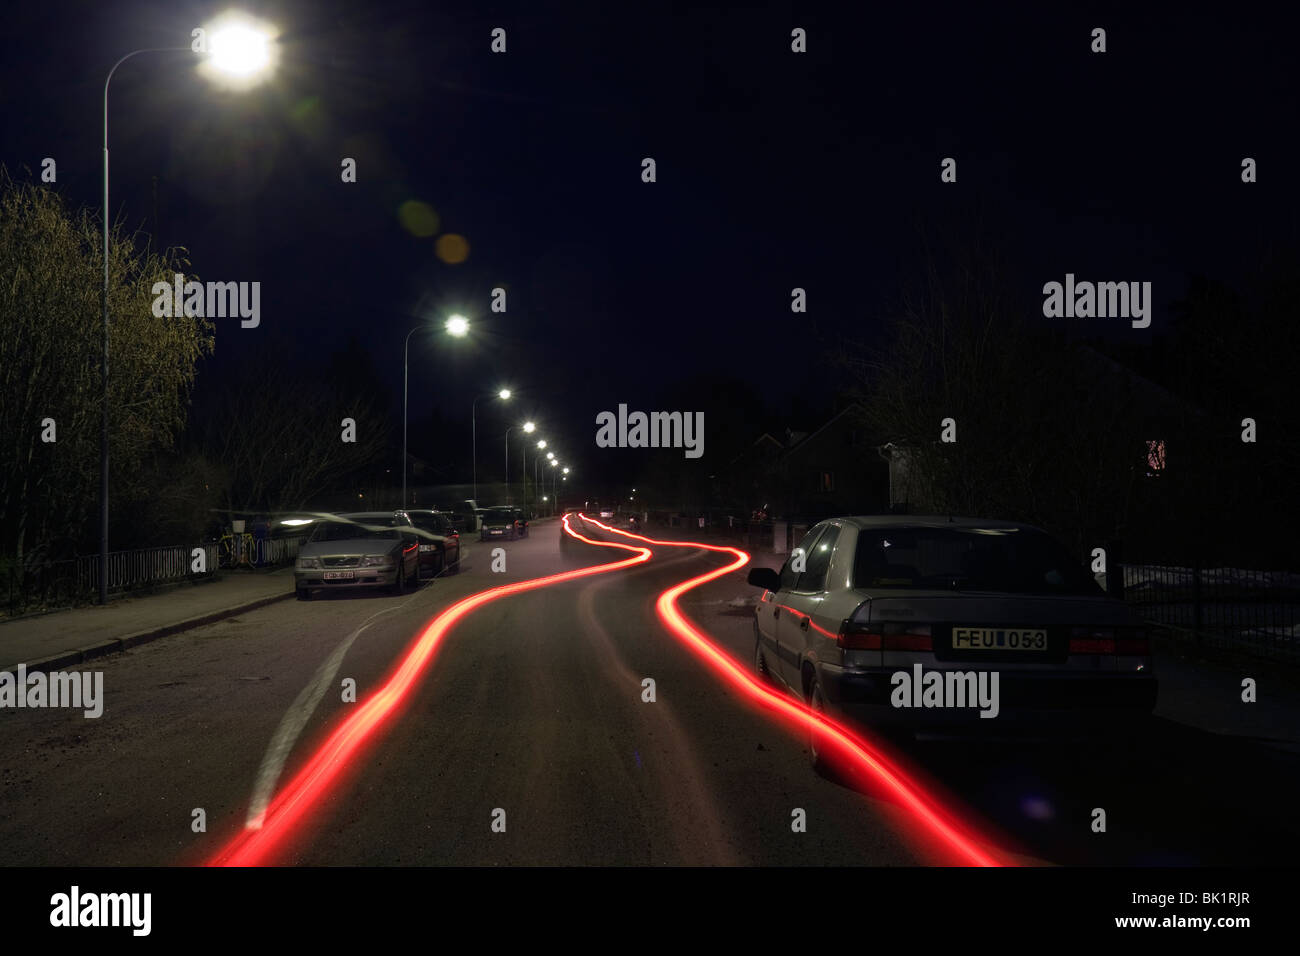 Light trails from the back of a car by night, long time exposure. - Stock Image